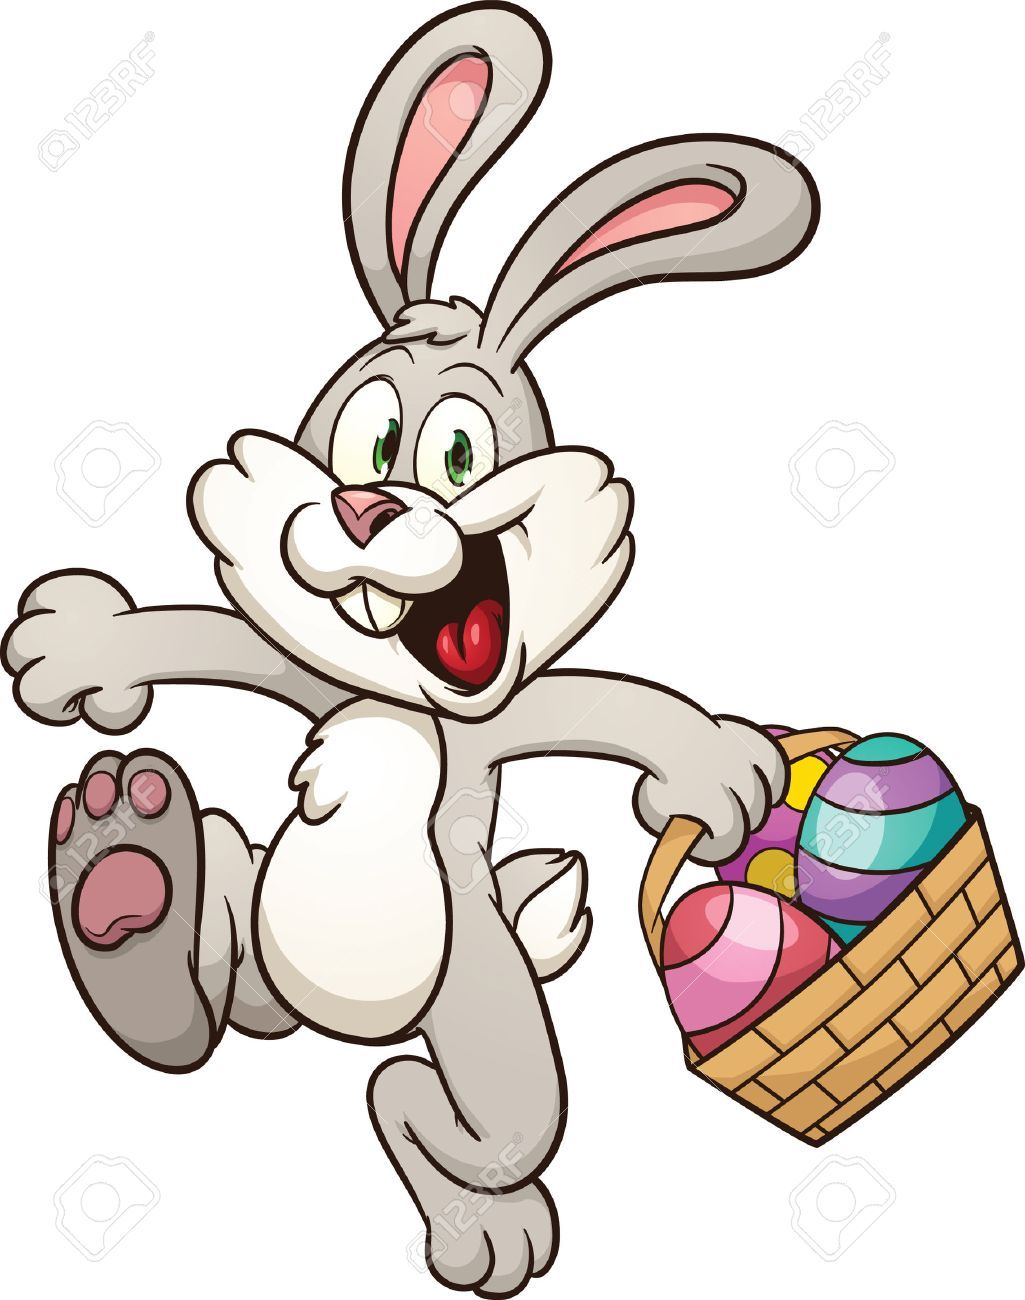 Cartoon Easter Bunny Jumping With Egg Basket Vector Clip Art Illustration With Simple Gradients All Easter Bunny Pictures Easter Bunny Cartoon Easter Cartoons